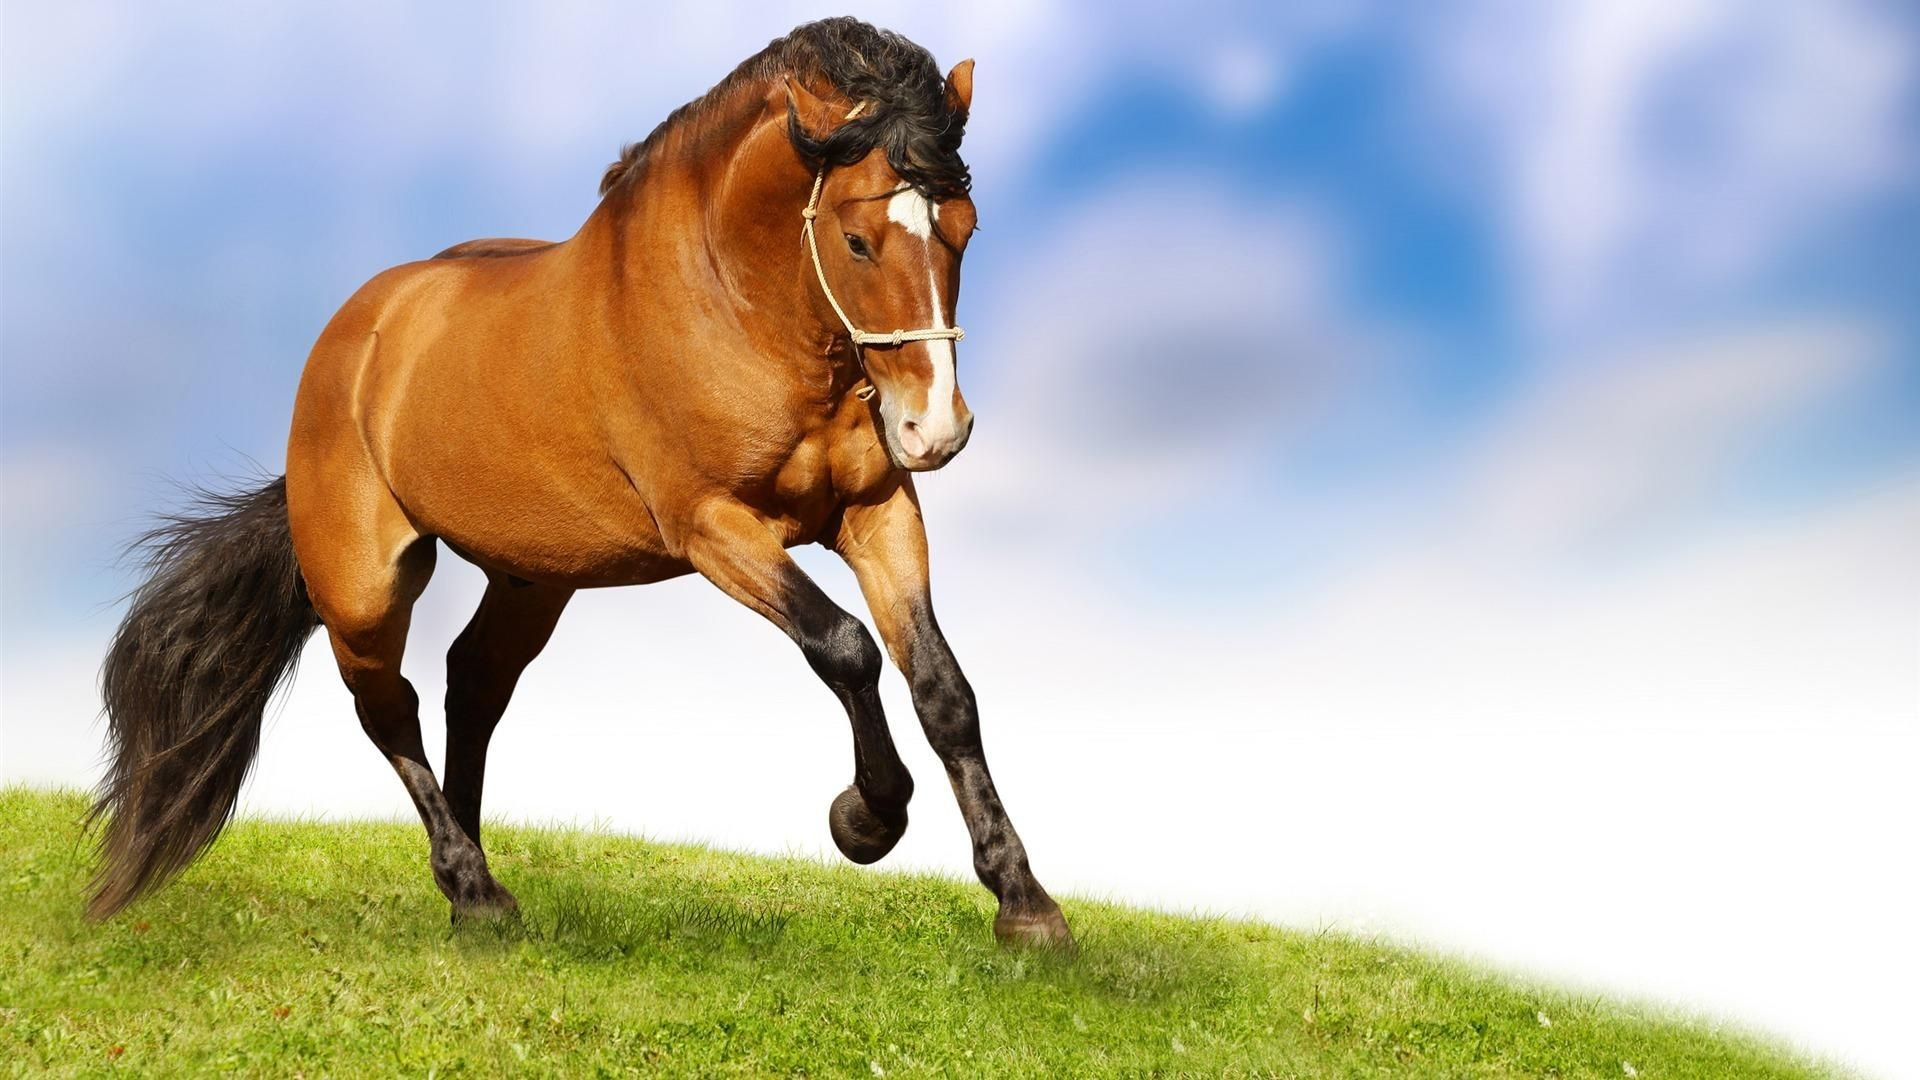 Res: 1920x1080, Christmas Horses Wallpaper for Computer | Home » Animals pictures » Horse  wallpapers